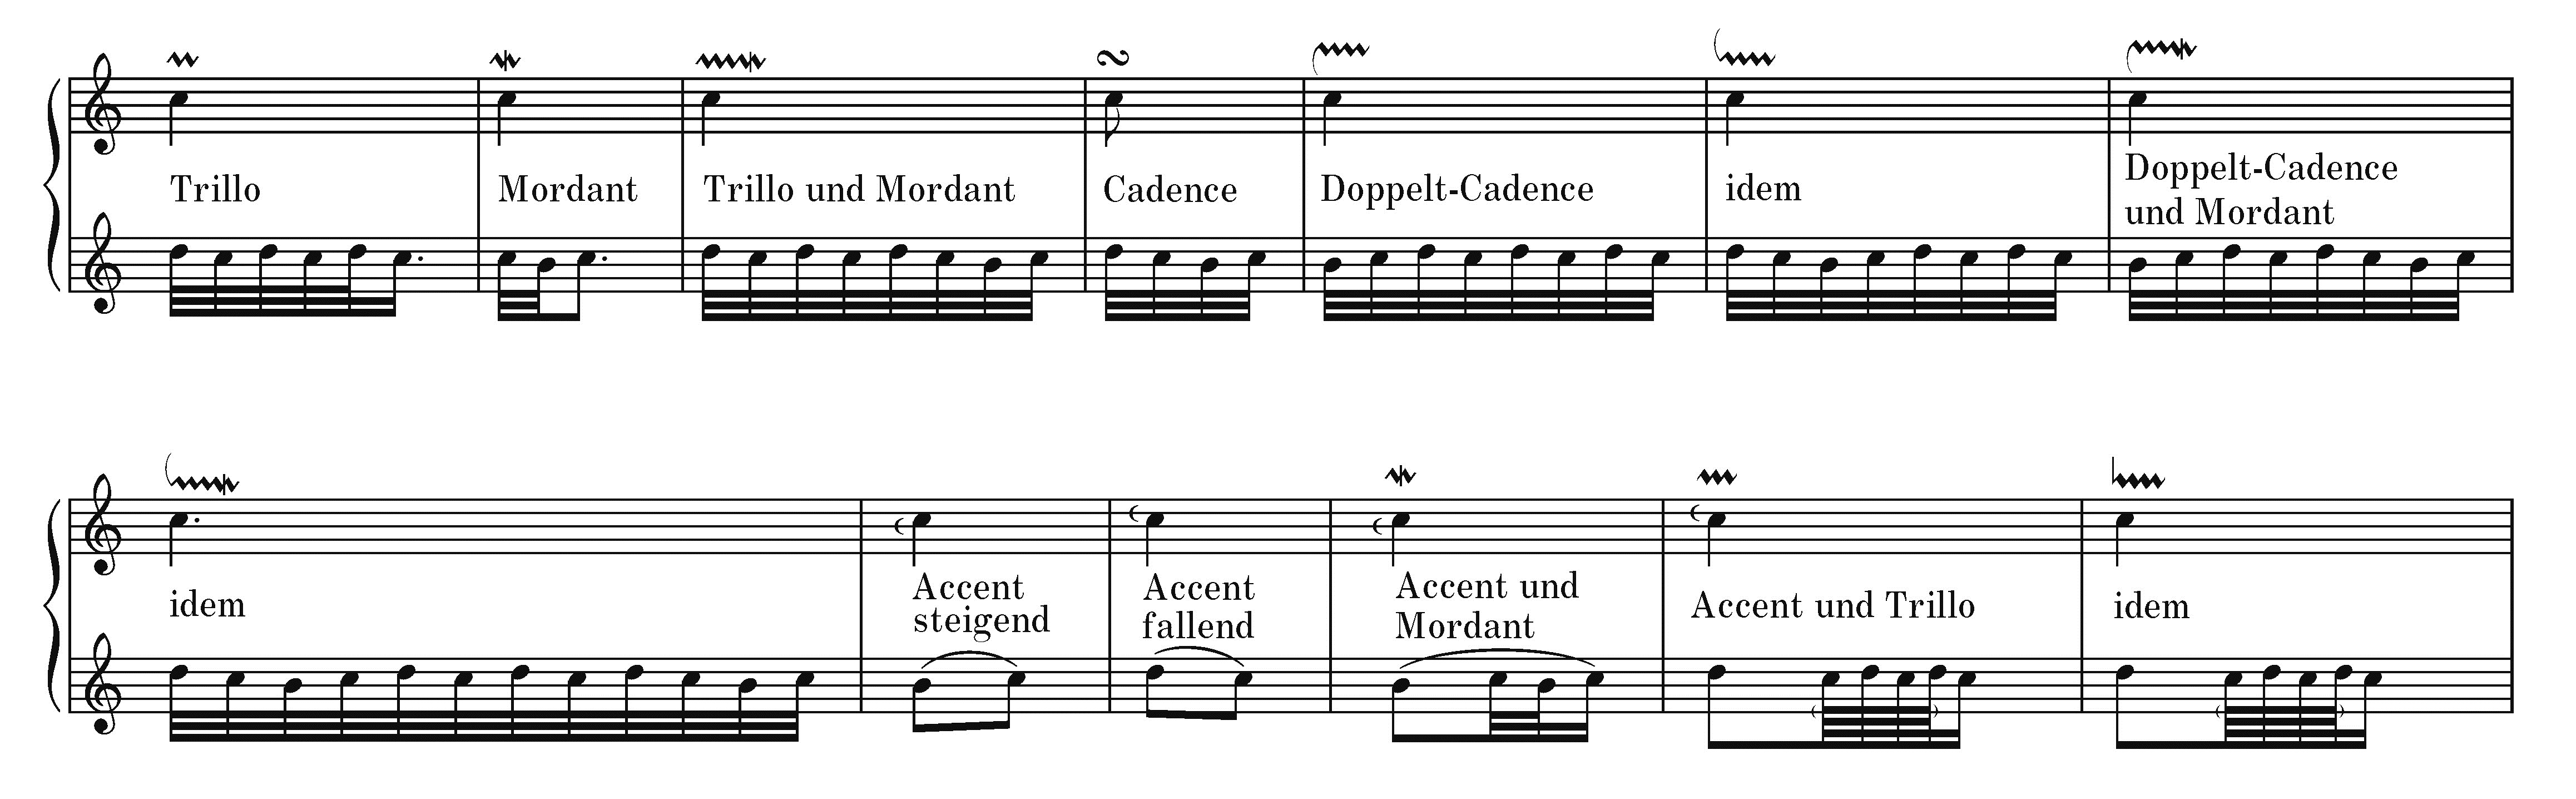 About the difficulties of notating ornamentation the riddle of a johann sebastian bach clavierbchlein table of ornamentation biocorpaavc Gallery